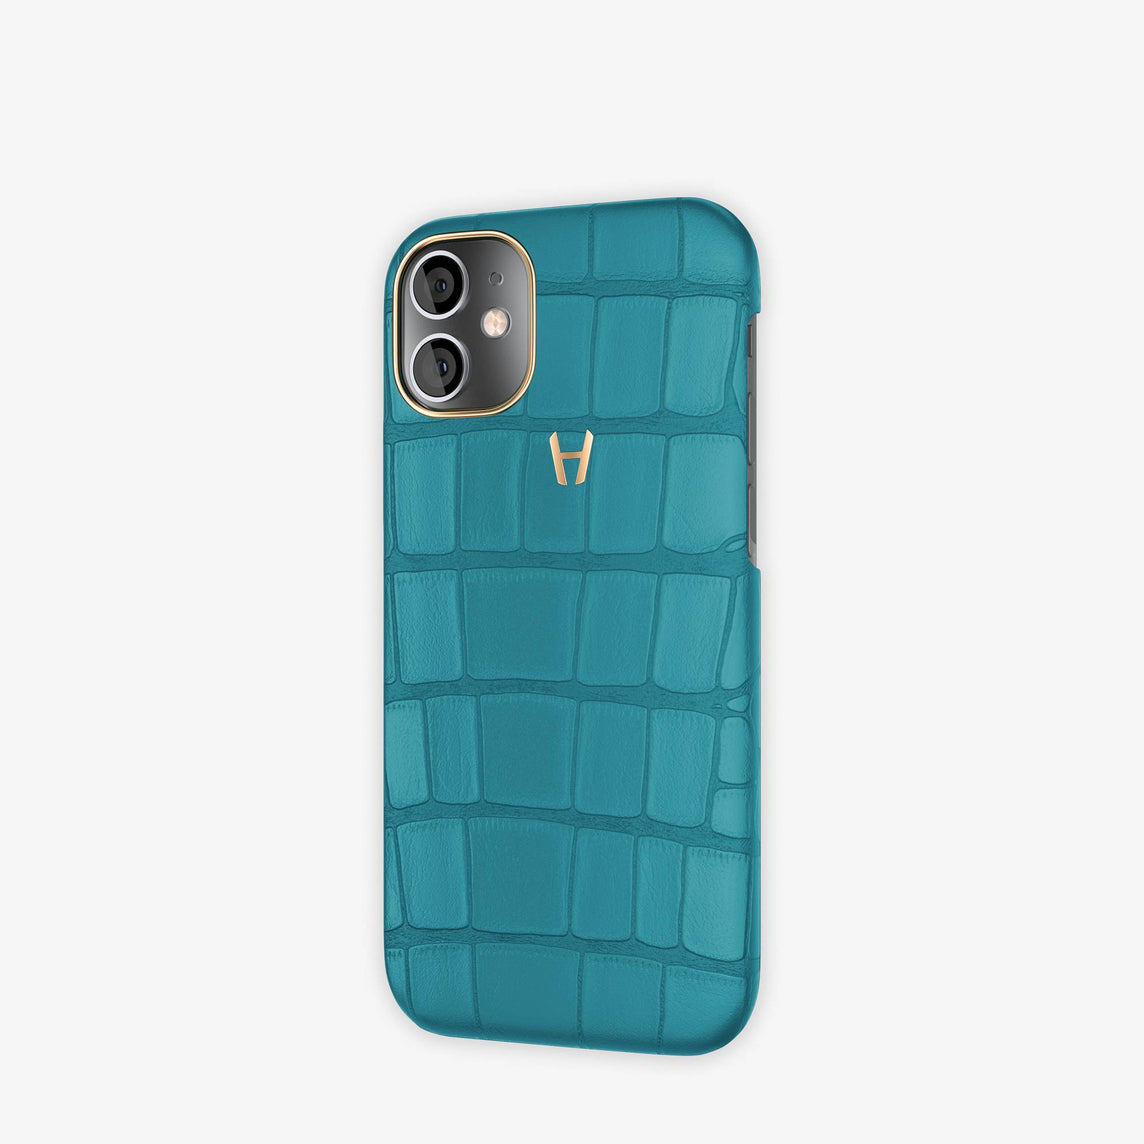 Alligator Case Apple iPhone 12 Mini | Teal - Rose Gold